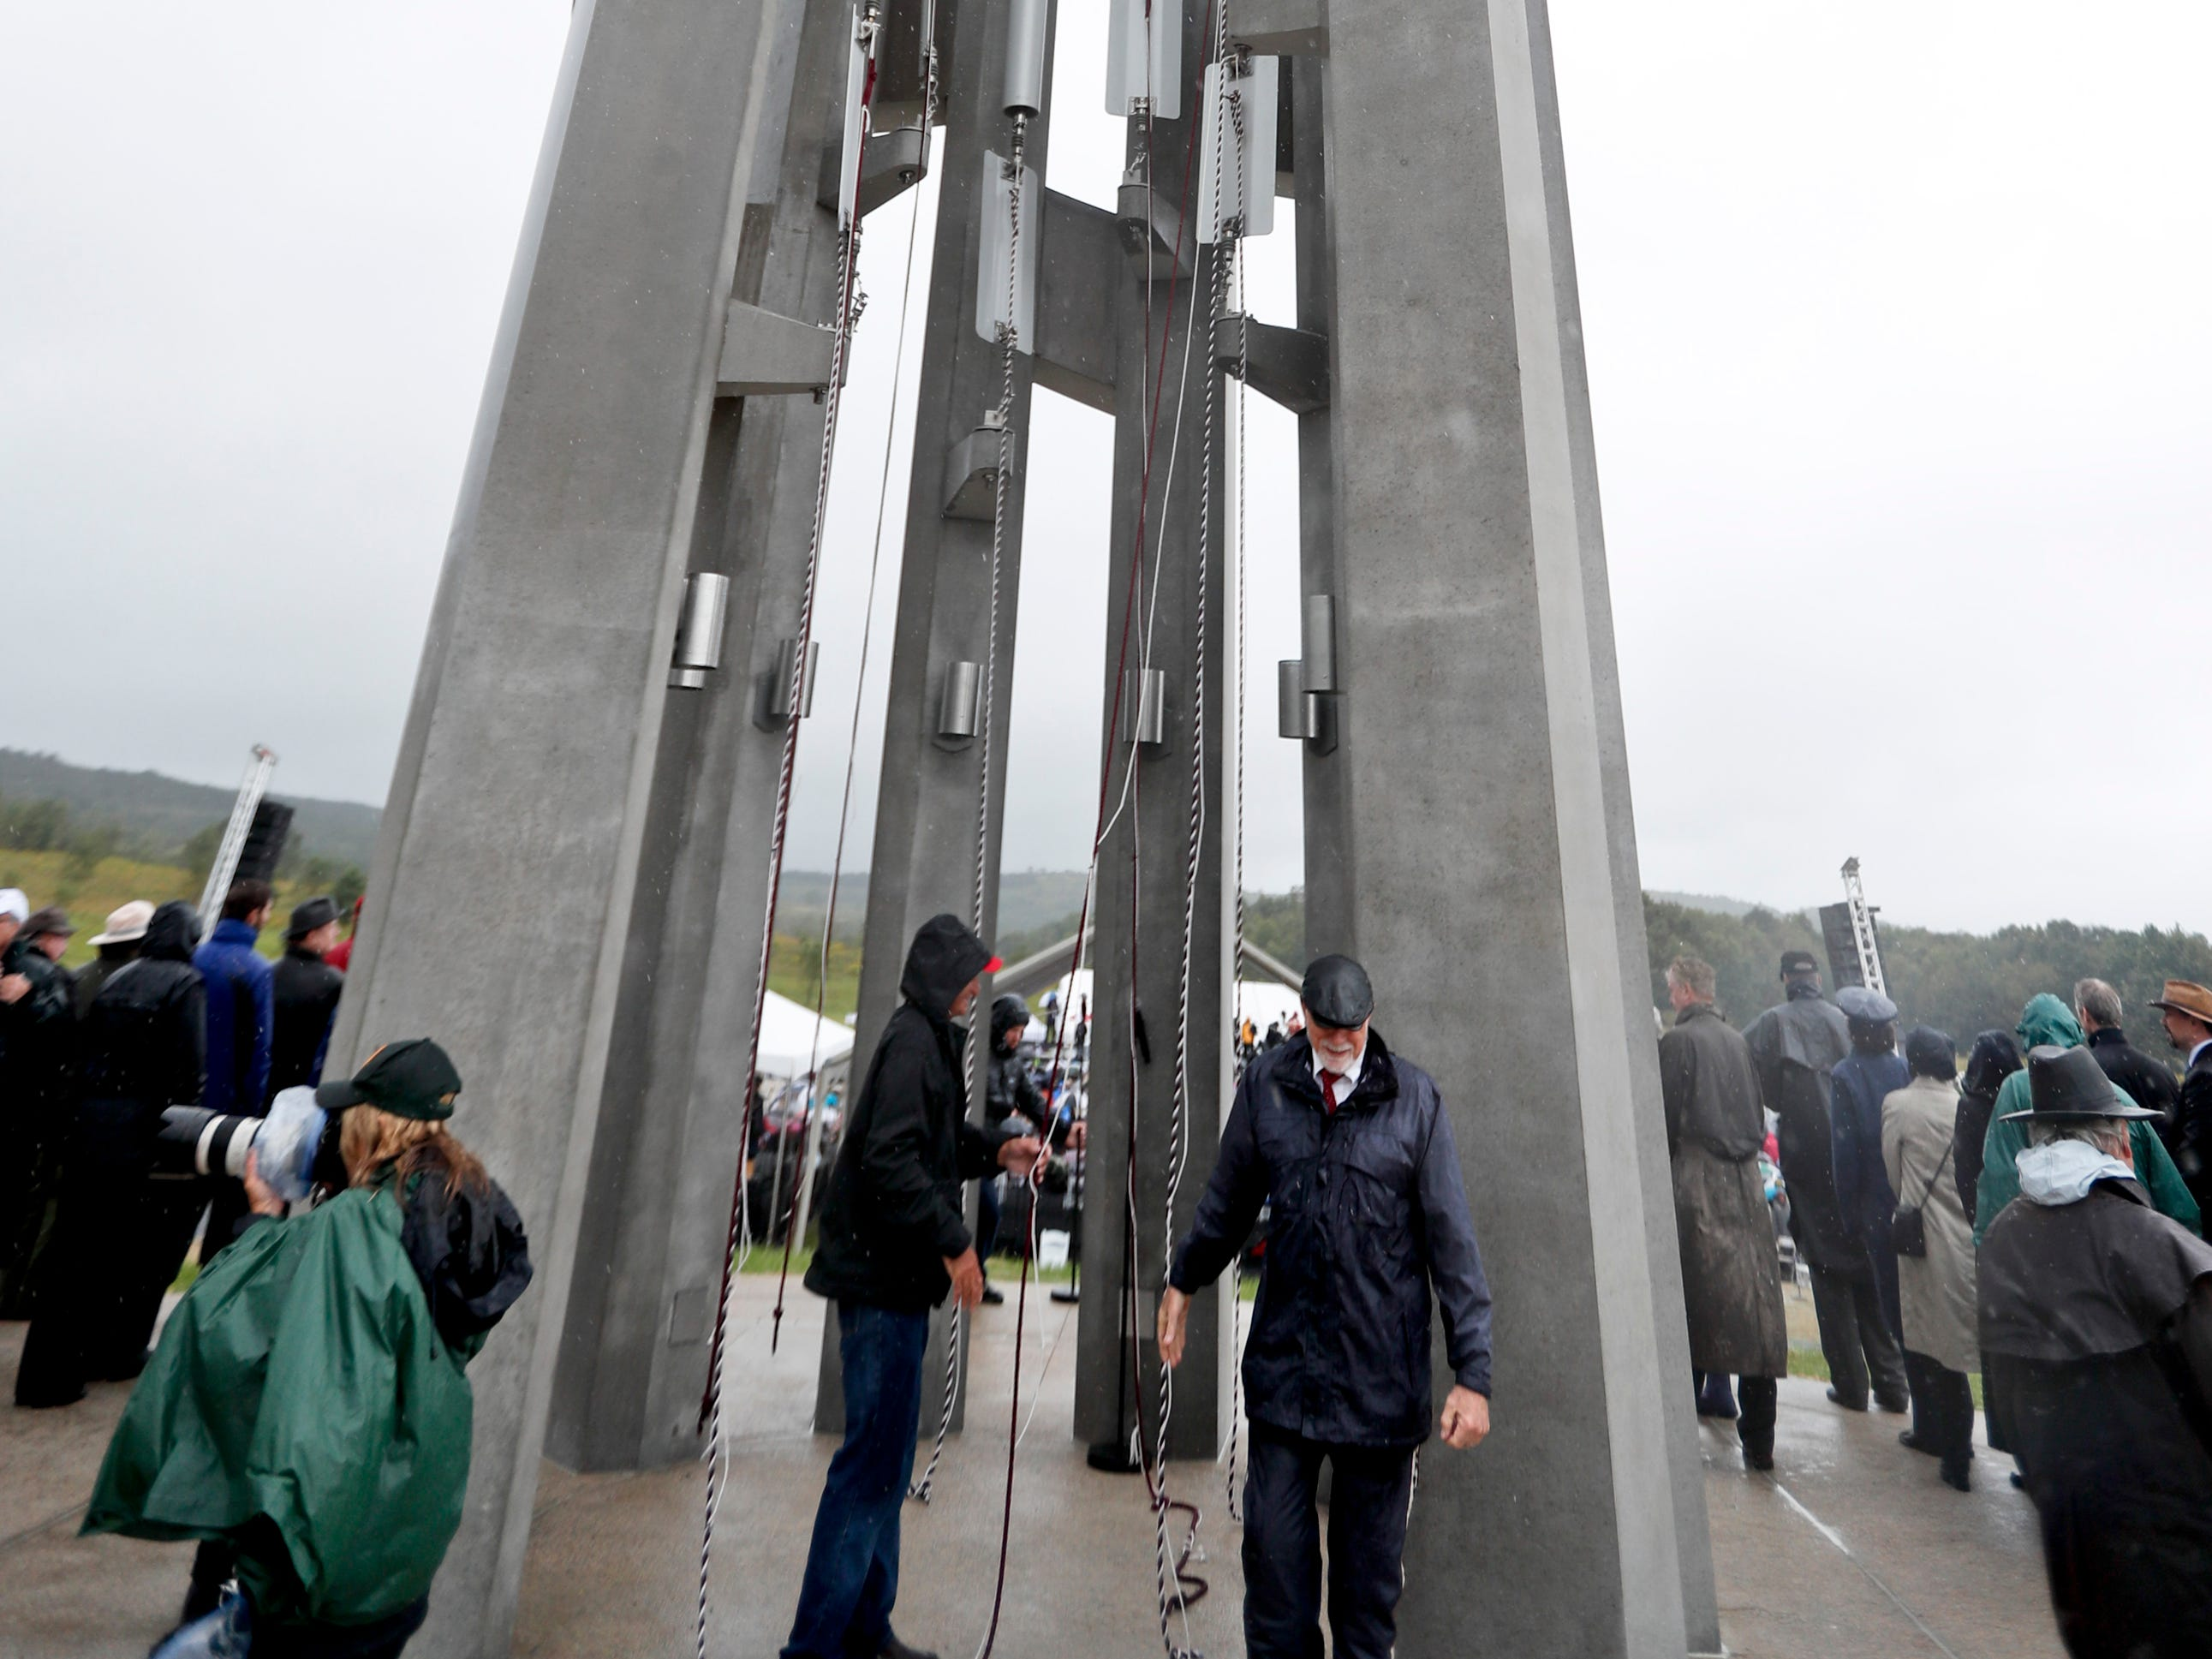 Members of the families of passengers of Flight 93, and friends and family reperesentatives stand under the 93-foot tall Tower of Voices after the dedication on Sunday, Sept. 9, 2018 at the Flight 93 National Memorial in Shanksville, Pa.